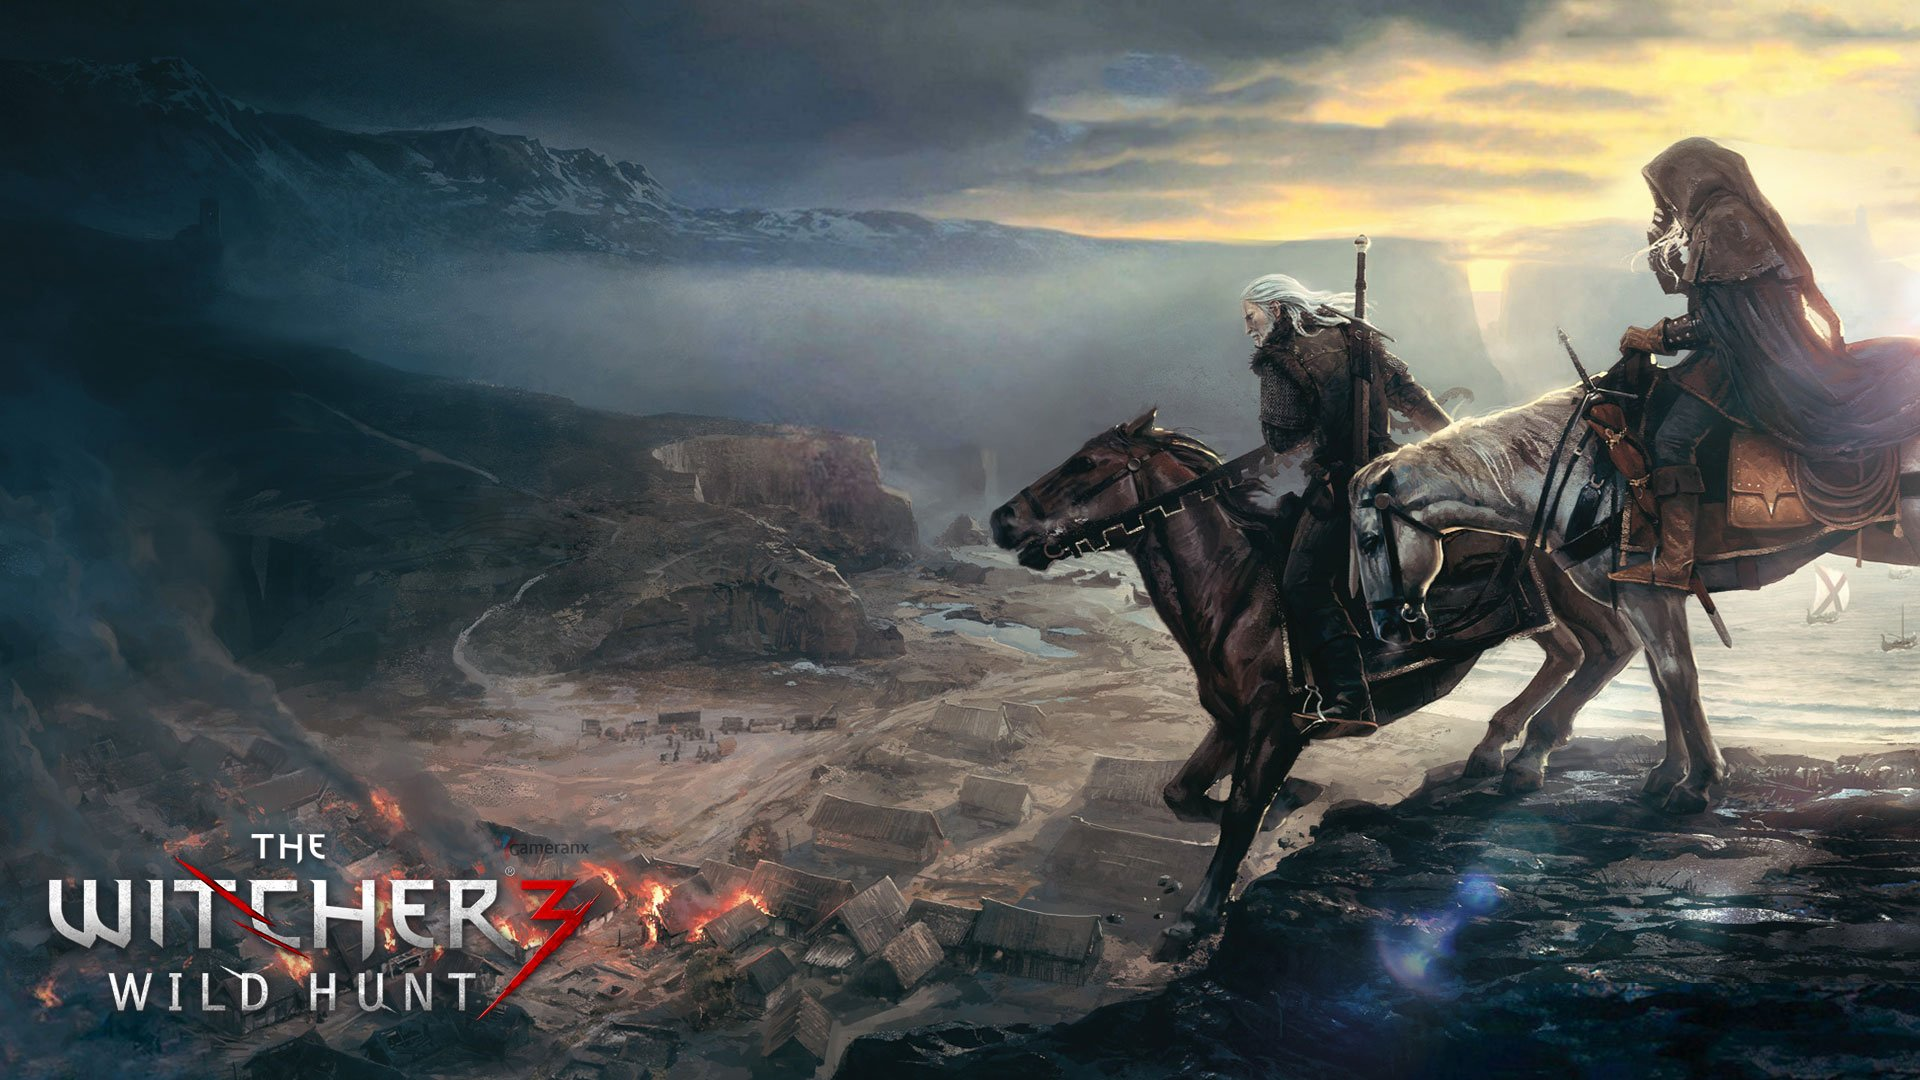 45 The Witcher 2019 Wallpapers On Wallpapersafari